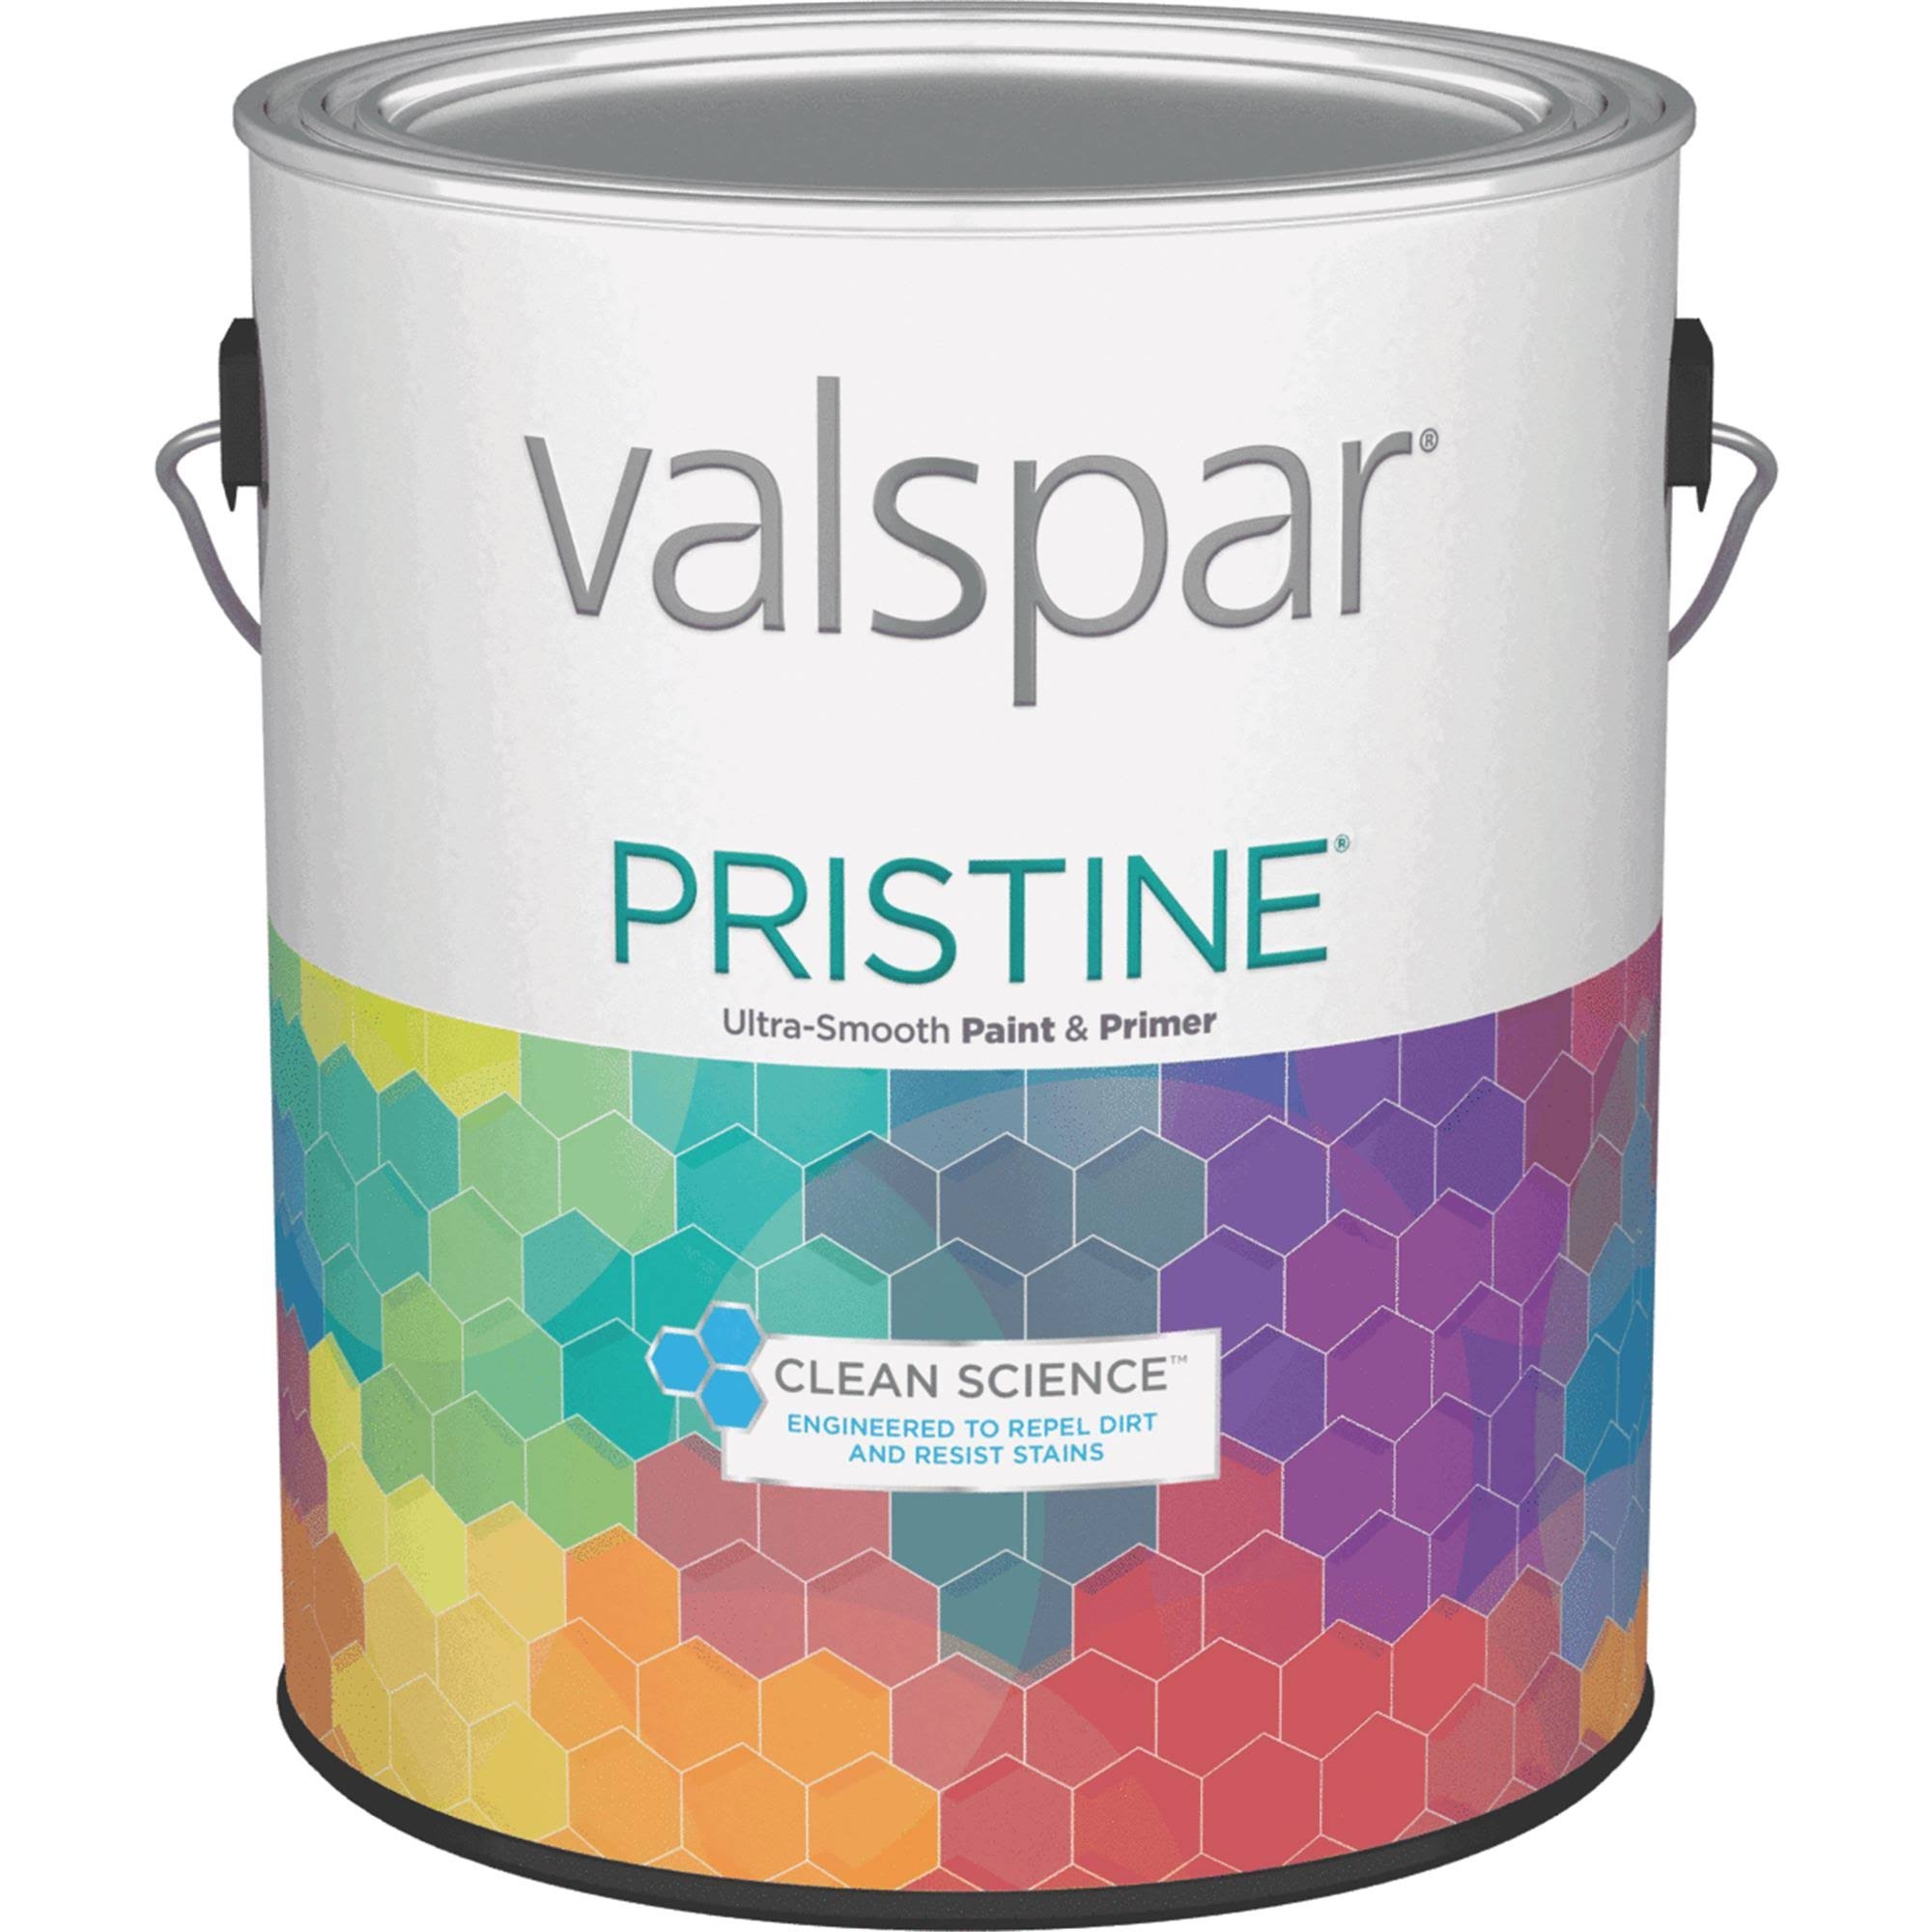 Valspar Pristine 100 Acrylic Paint and Primer Matte Interior Wall Paint - White, 1gal